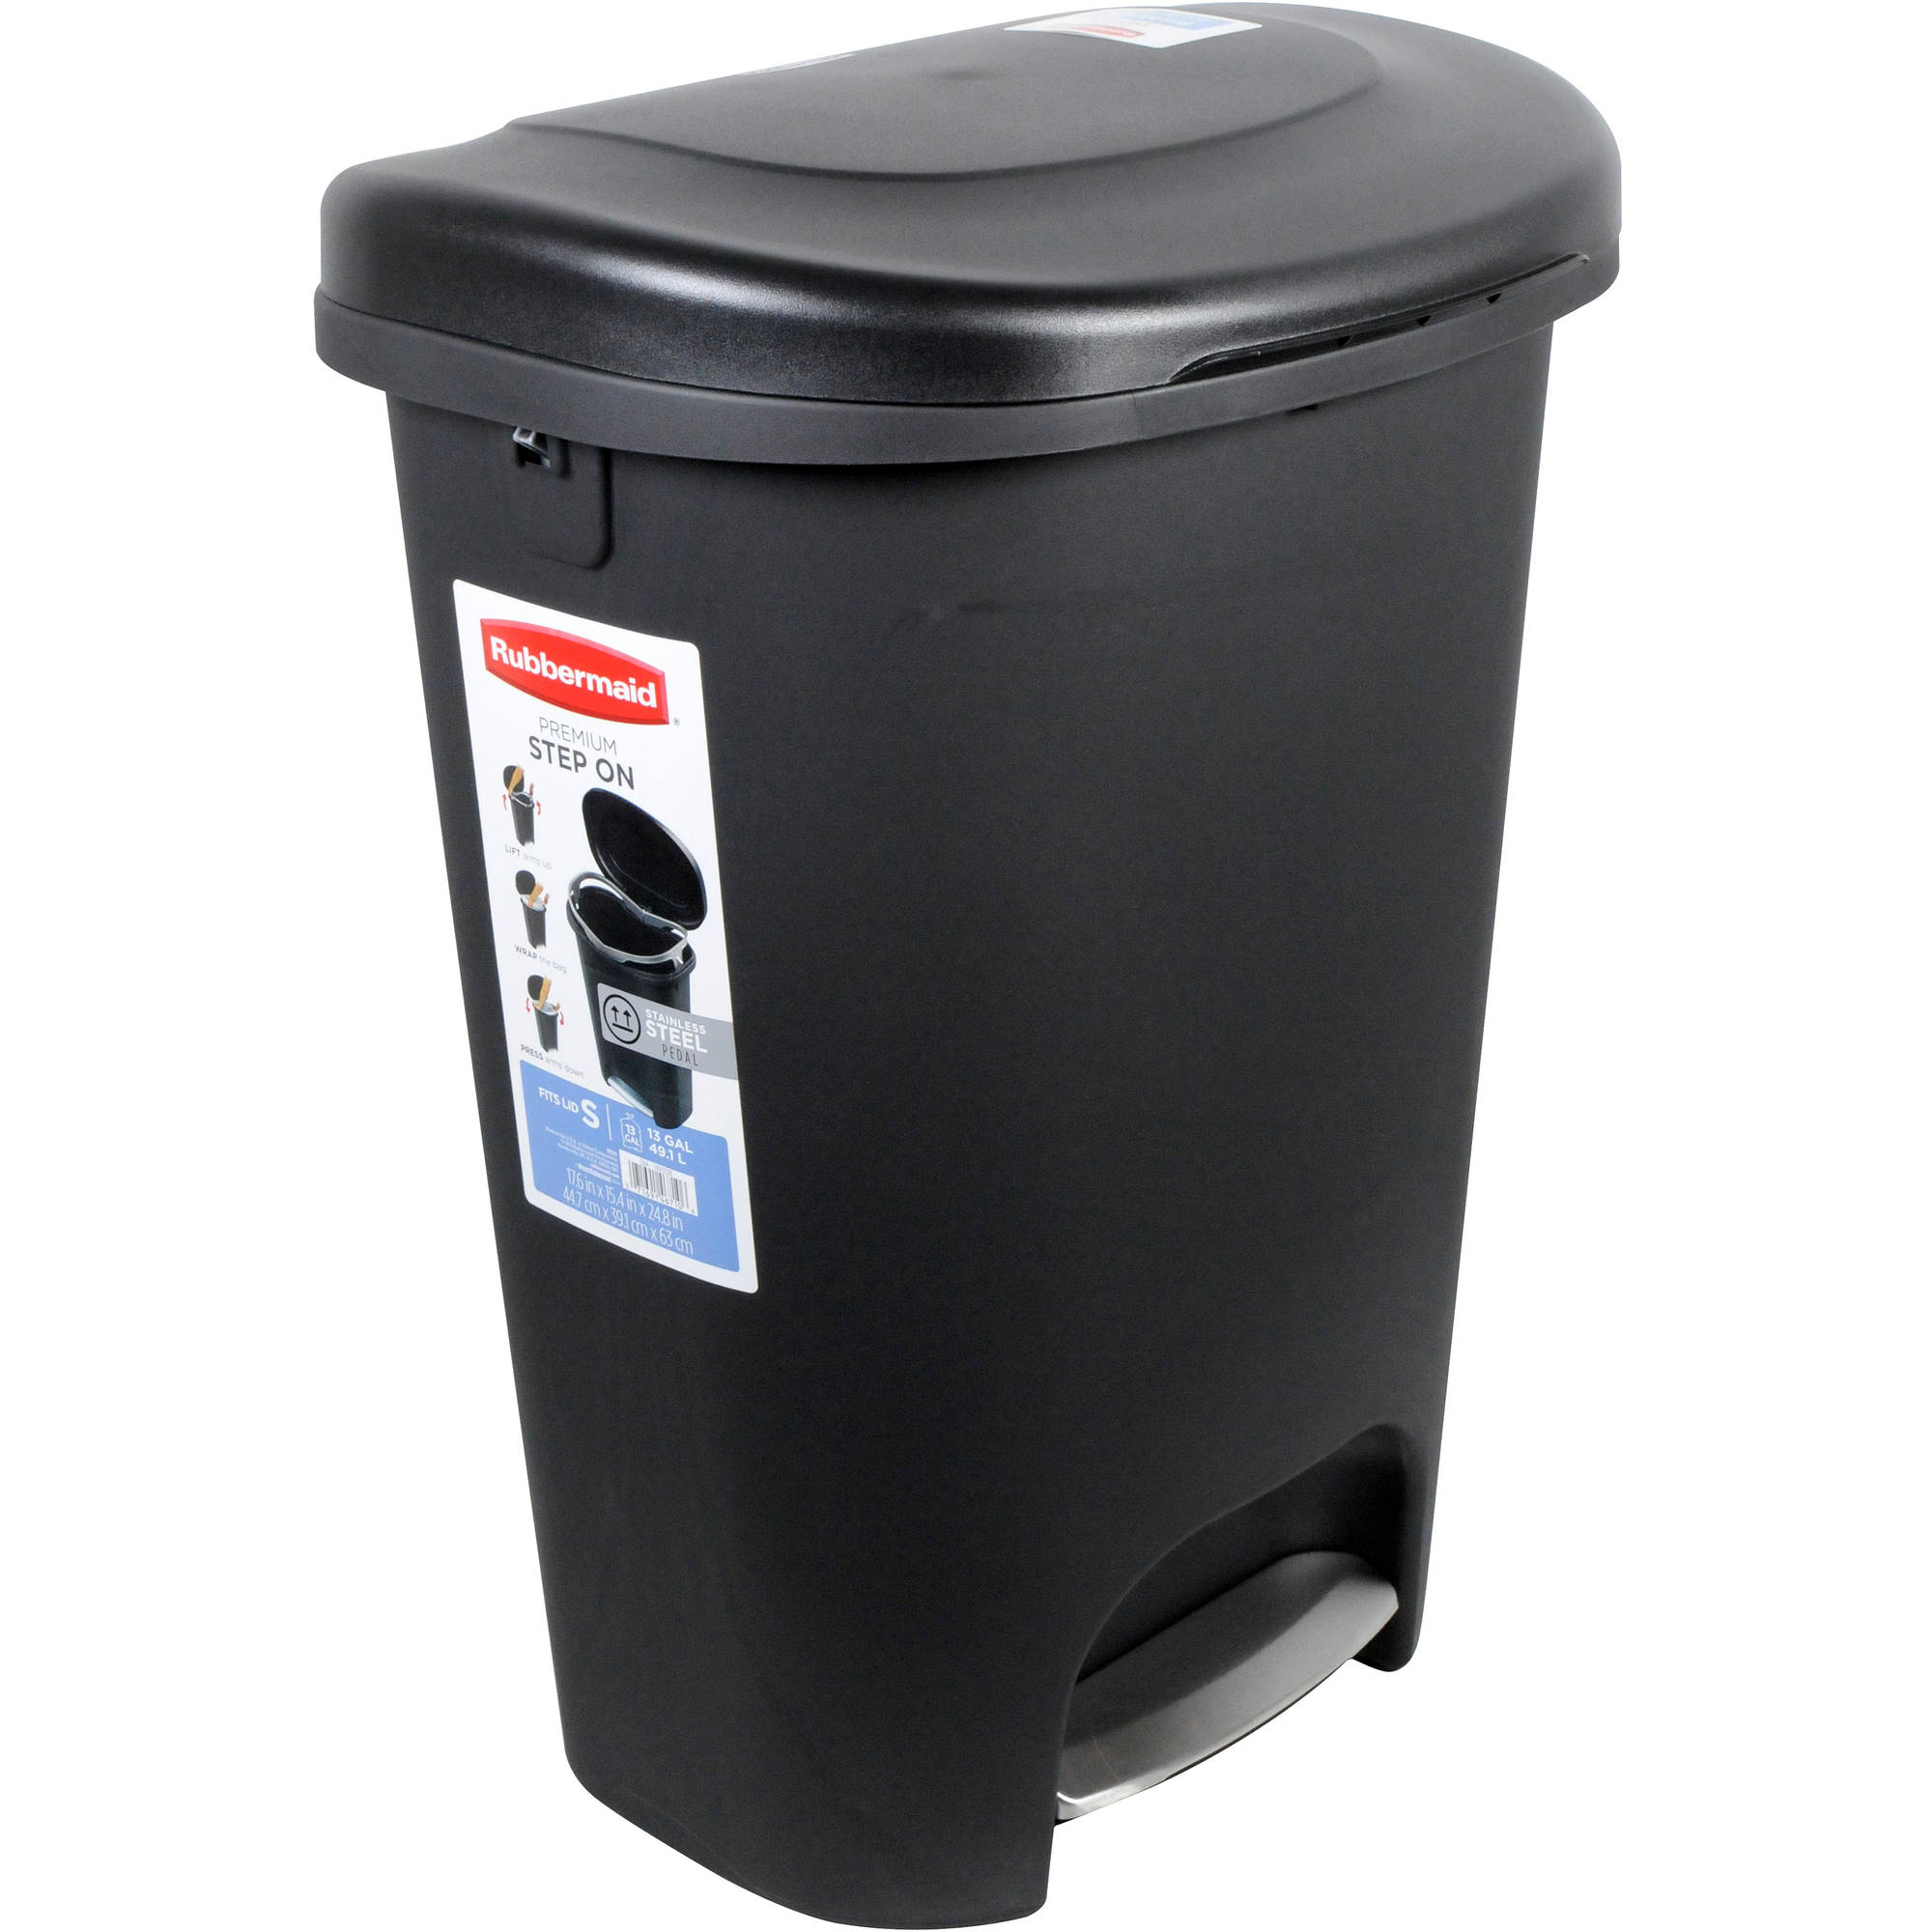 Superbe Rubbermaid Premium Step On Trash Can, 13 Gal, Black With Metal Accent    Walmart.com